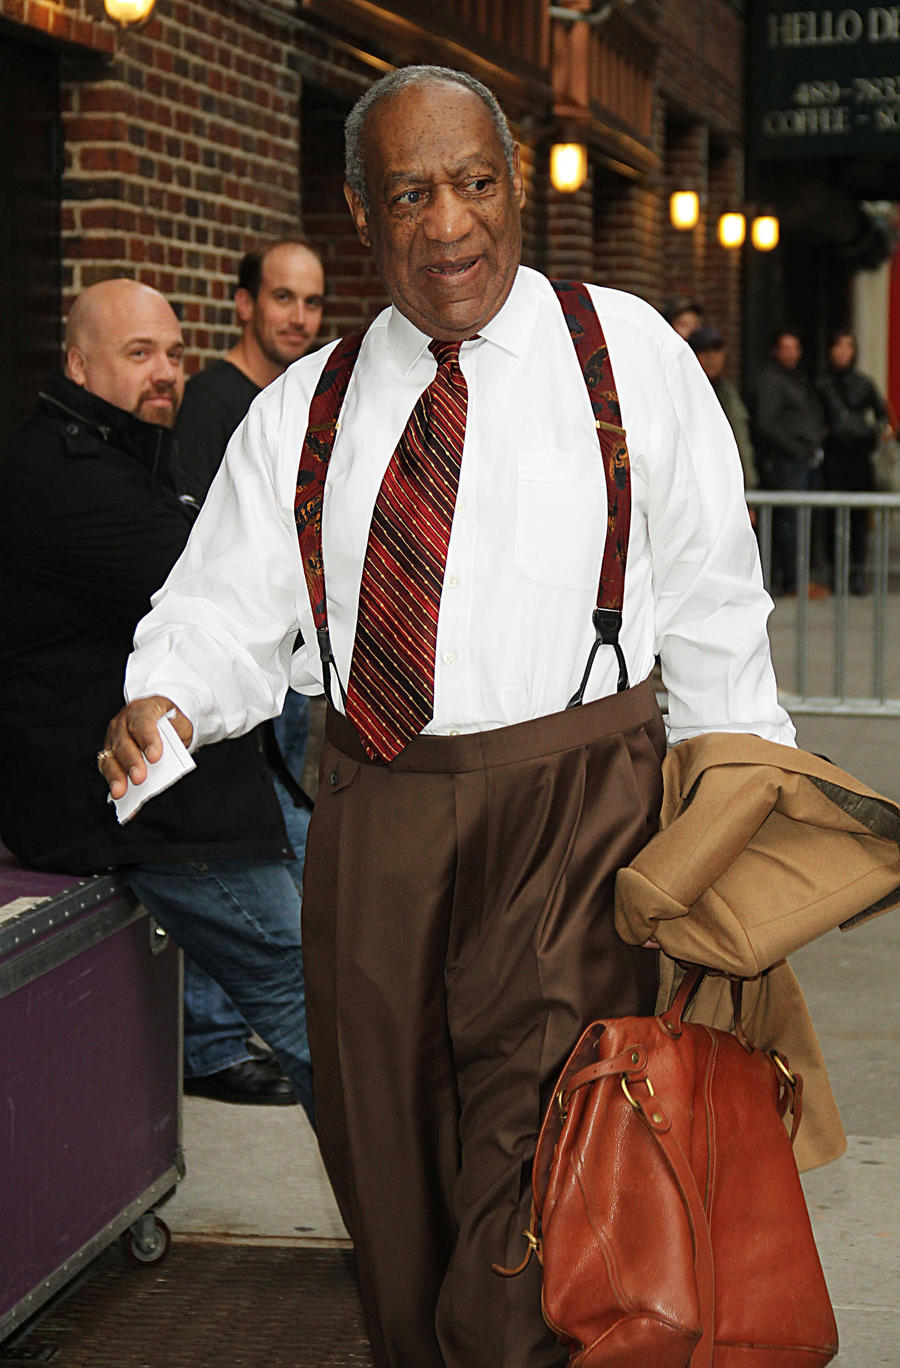 Bill Cosby's Drug Testimony Allowed As Evidence In Criminal Trial